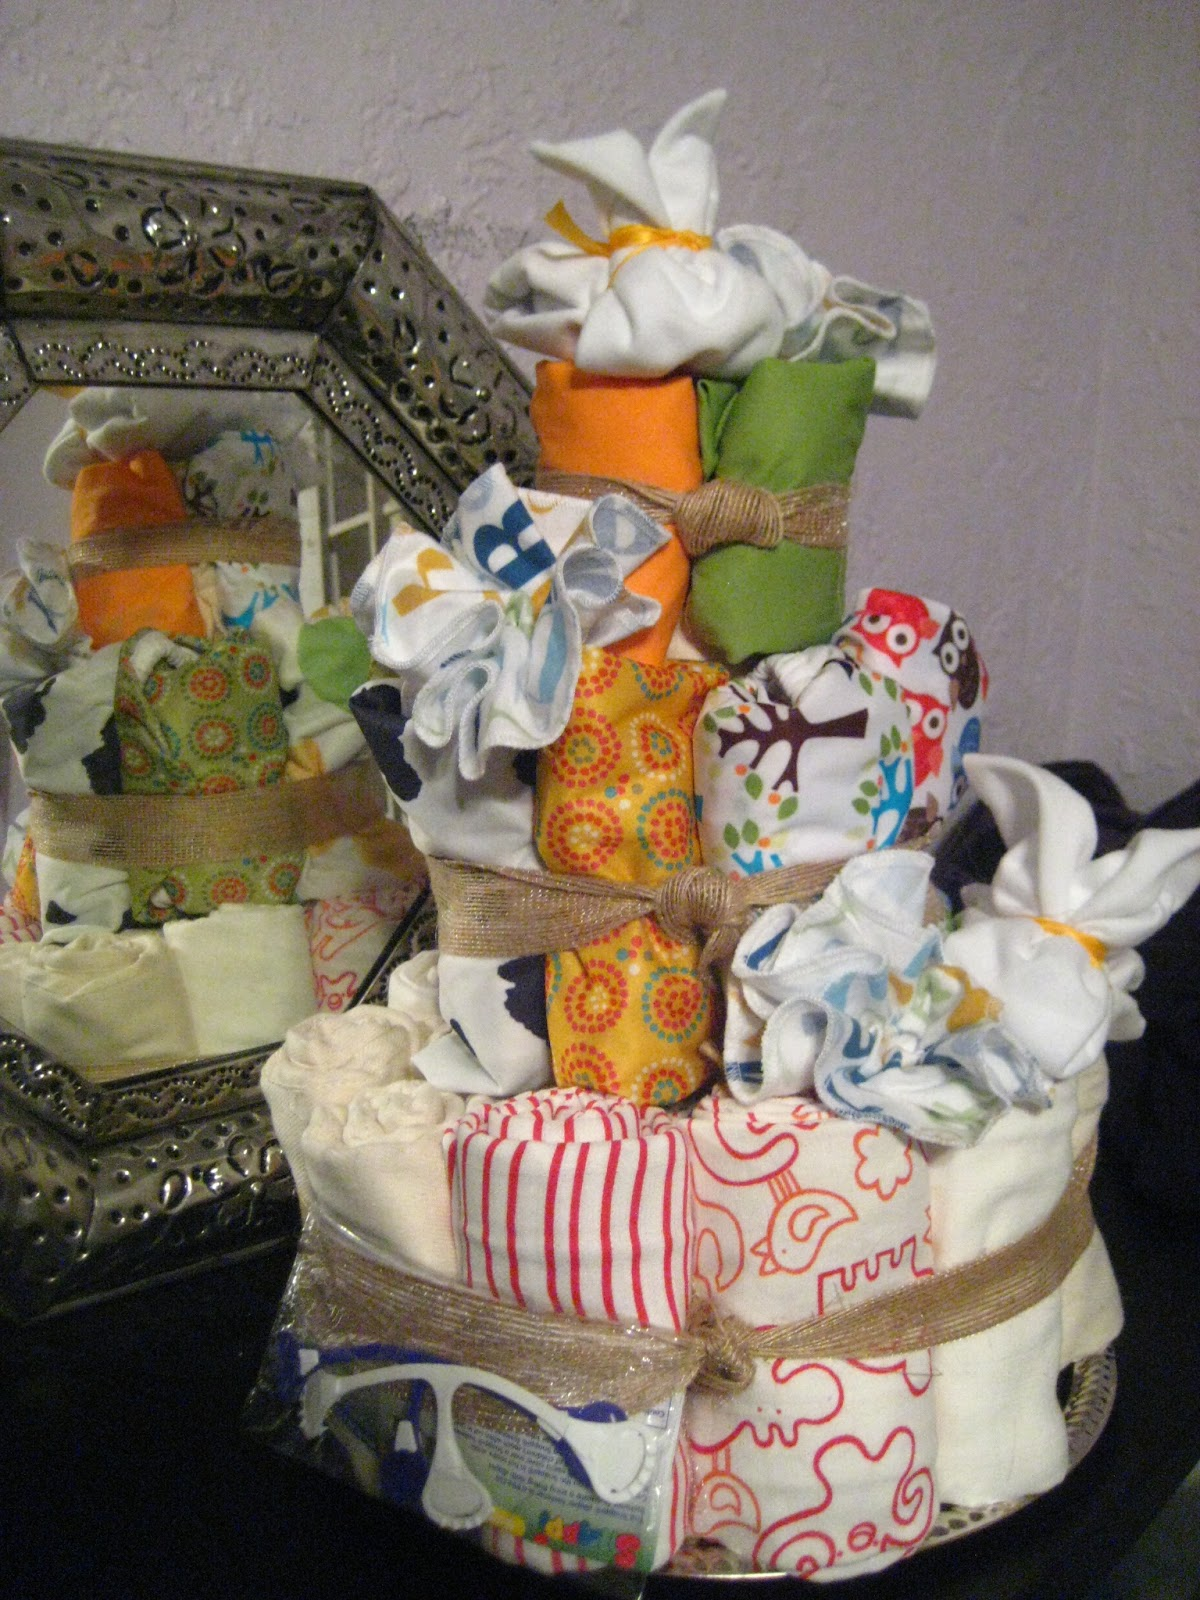 Cloth diaper cake from 2 Sleeping Babies